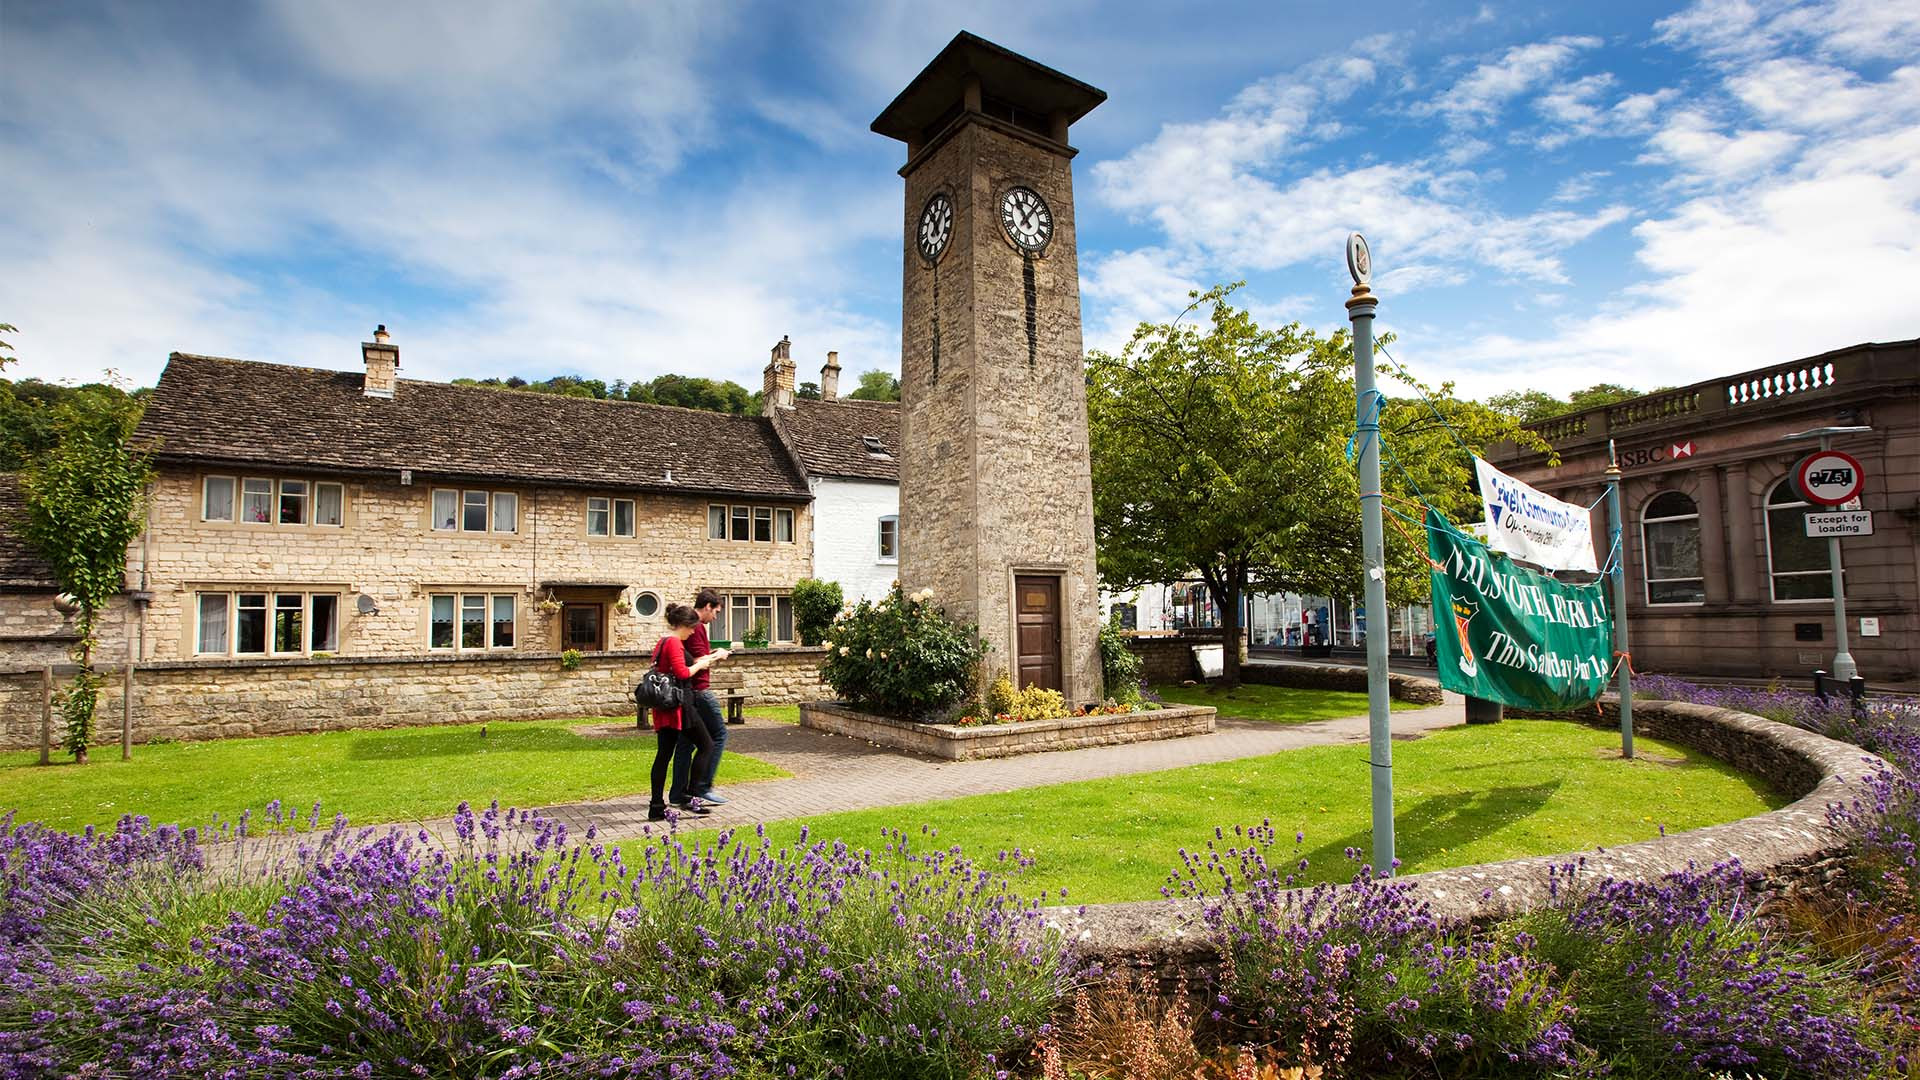 The clock tower in Nailsworth, near Stroud in thre Cotswolds